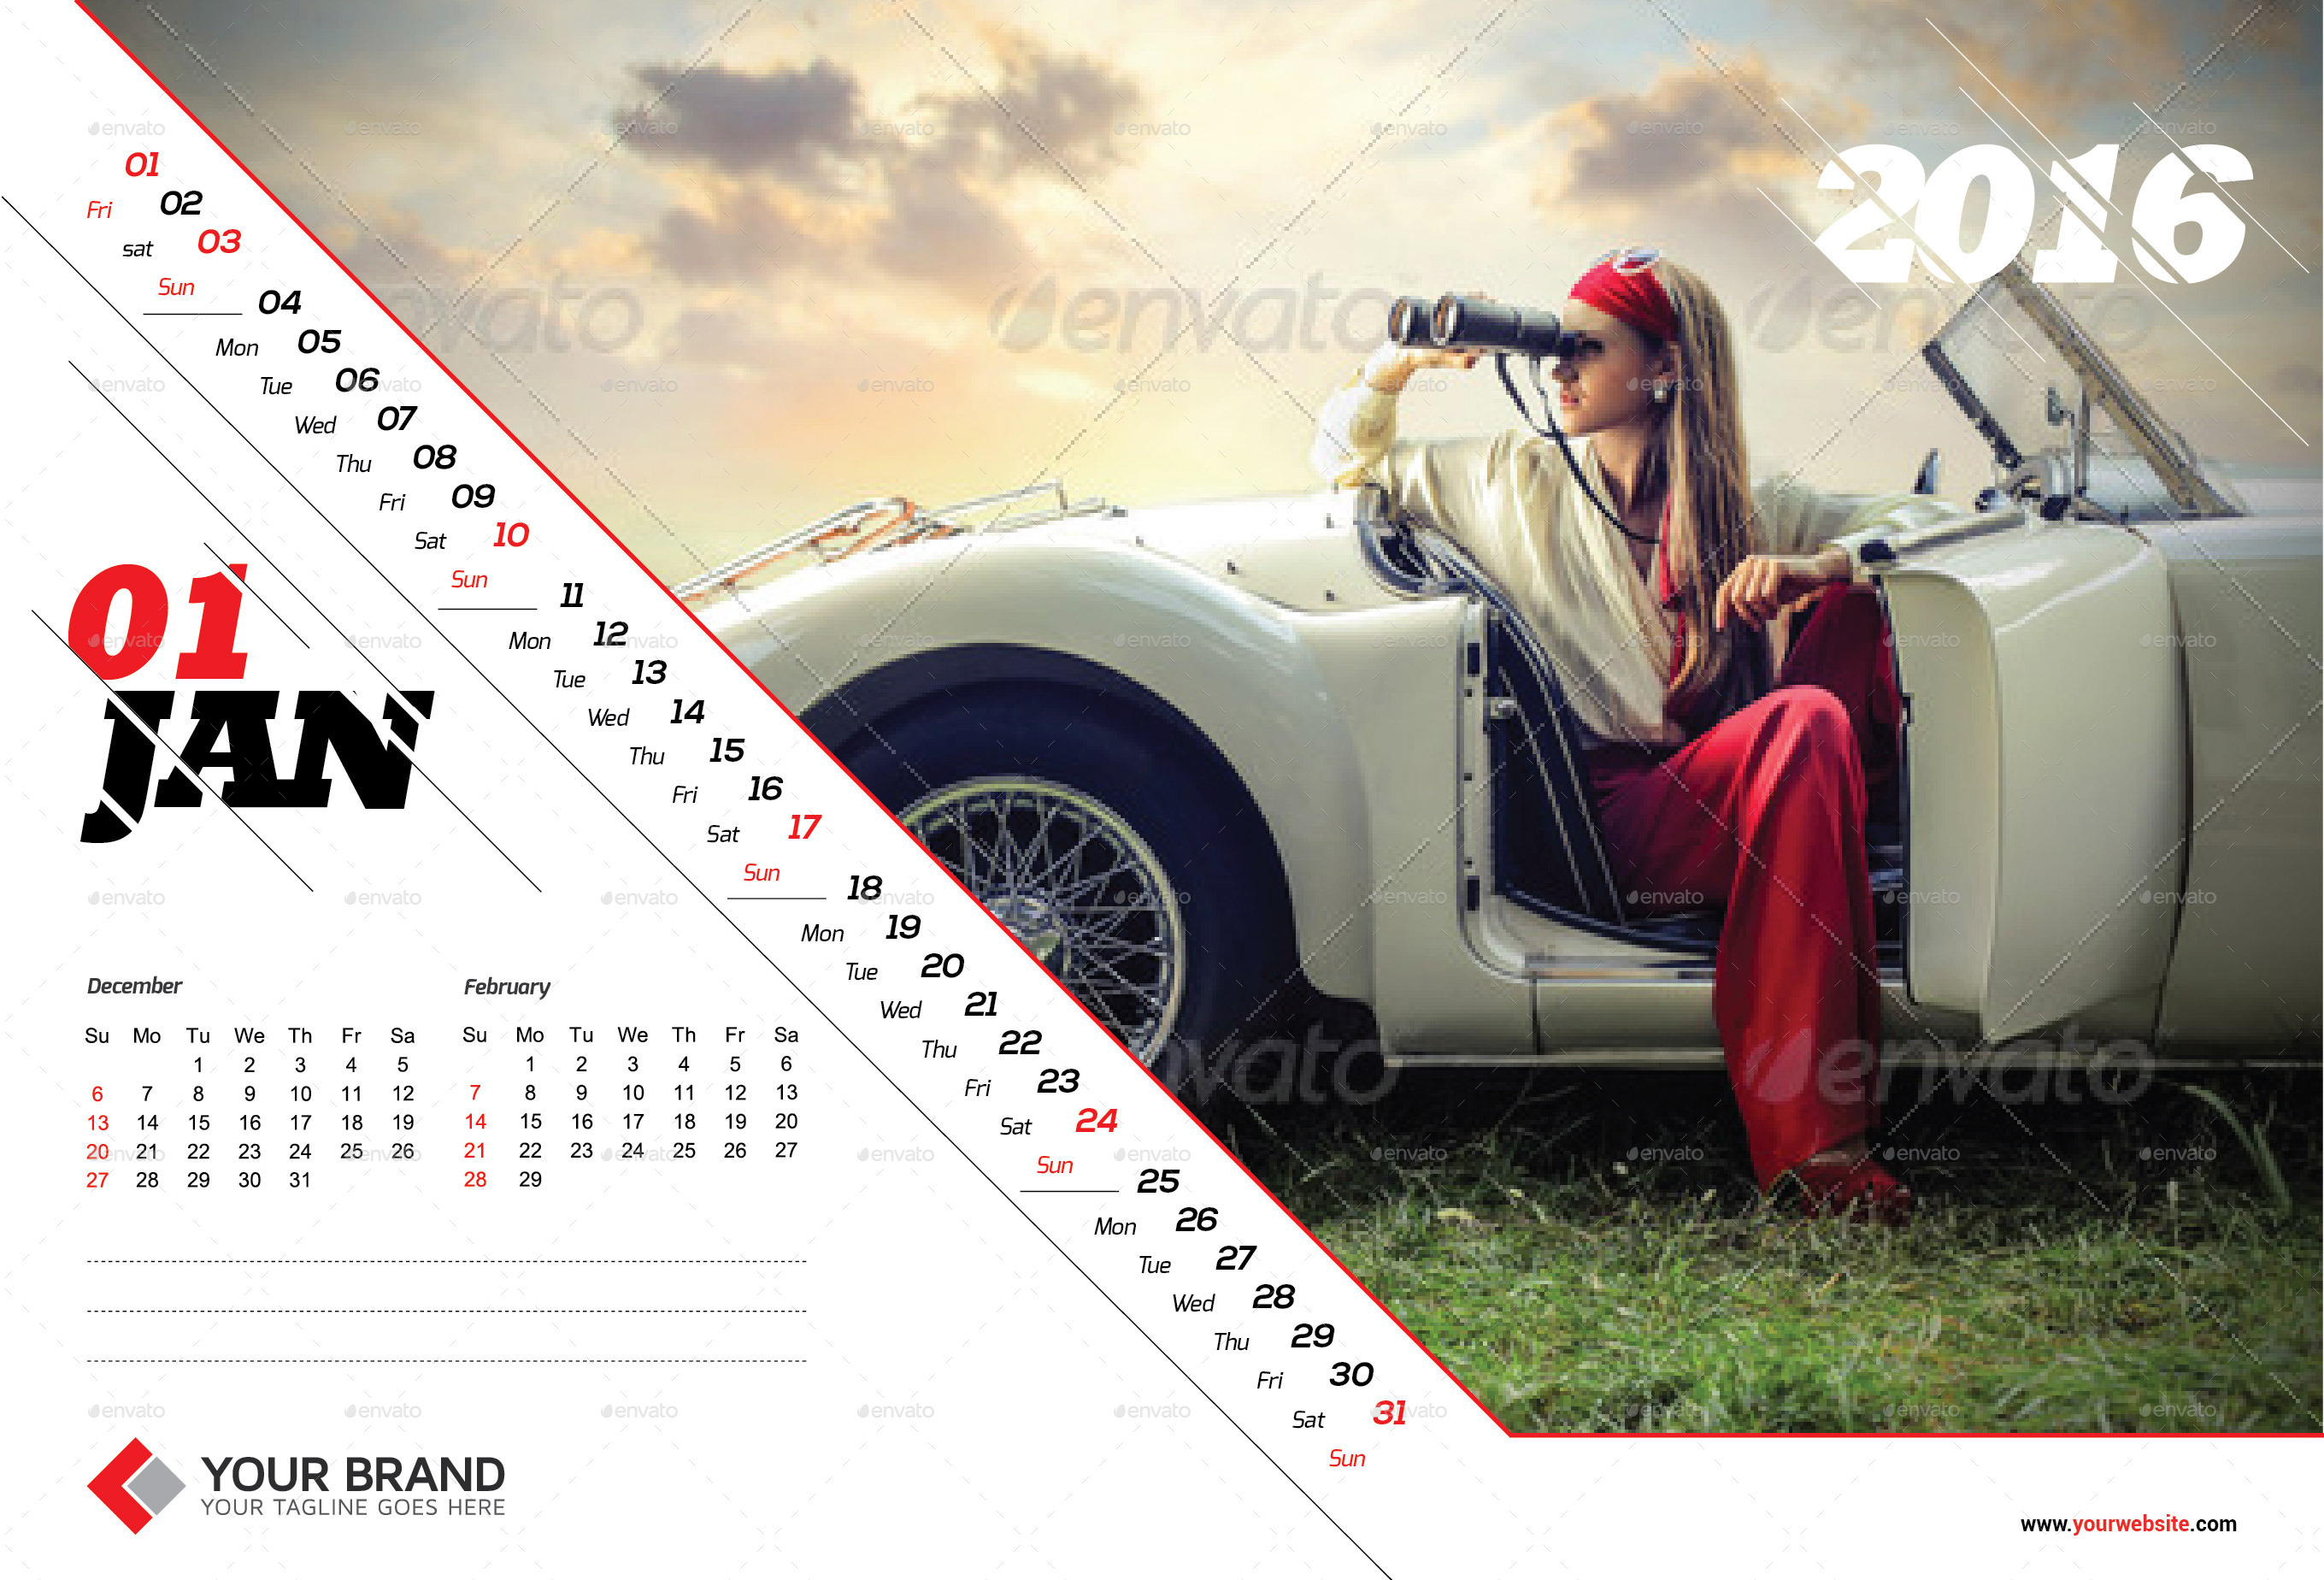 Corporate Calendar Design 2016 : Wall calendar design by olaylay graphicriver